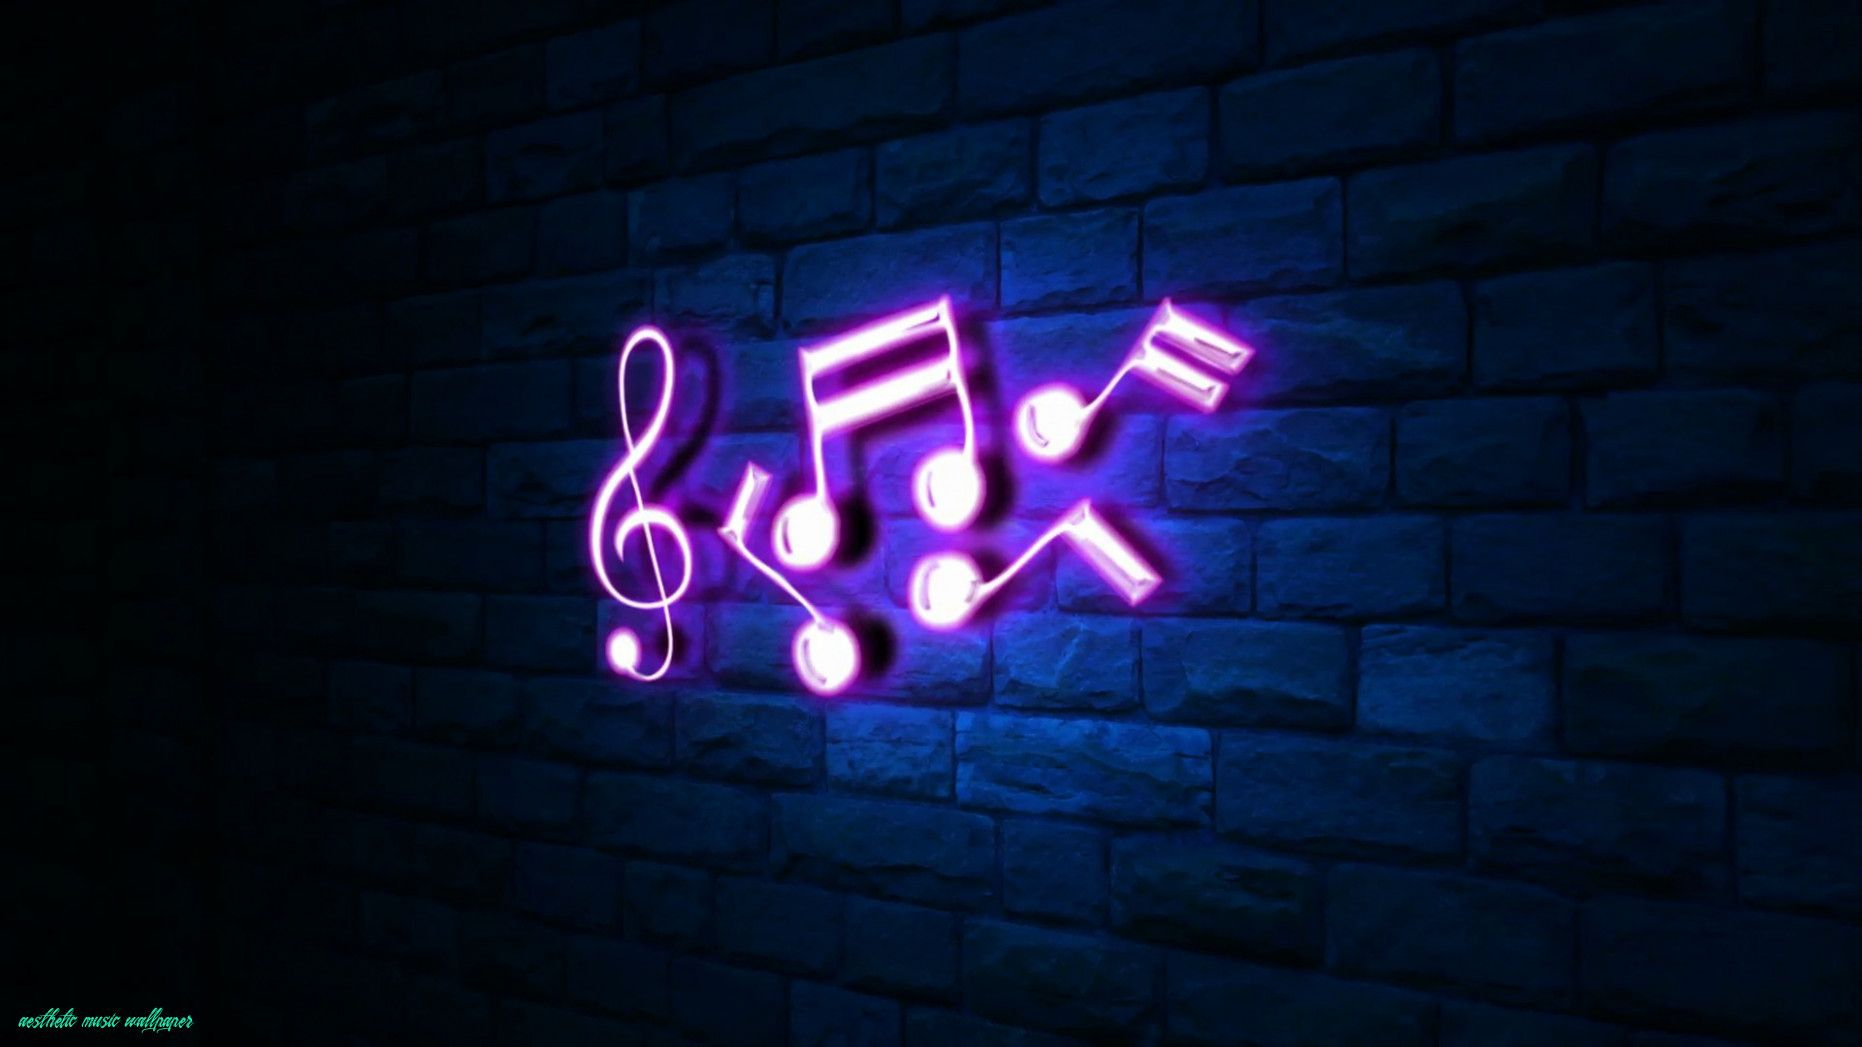 Music Notes Wallpaper Tumblr Music Wallpaper Music Notes Music Backgrounds